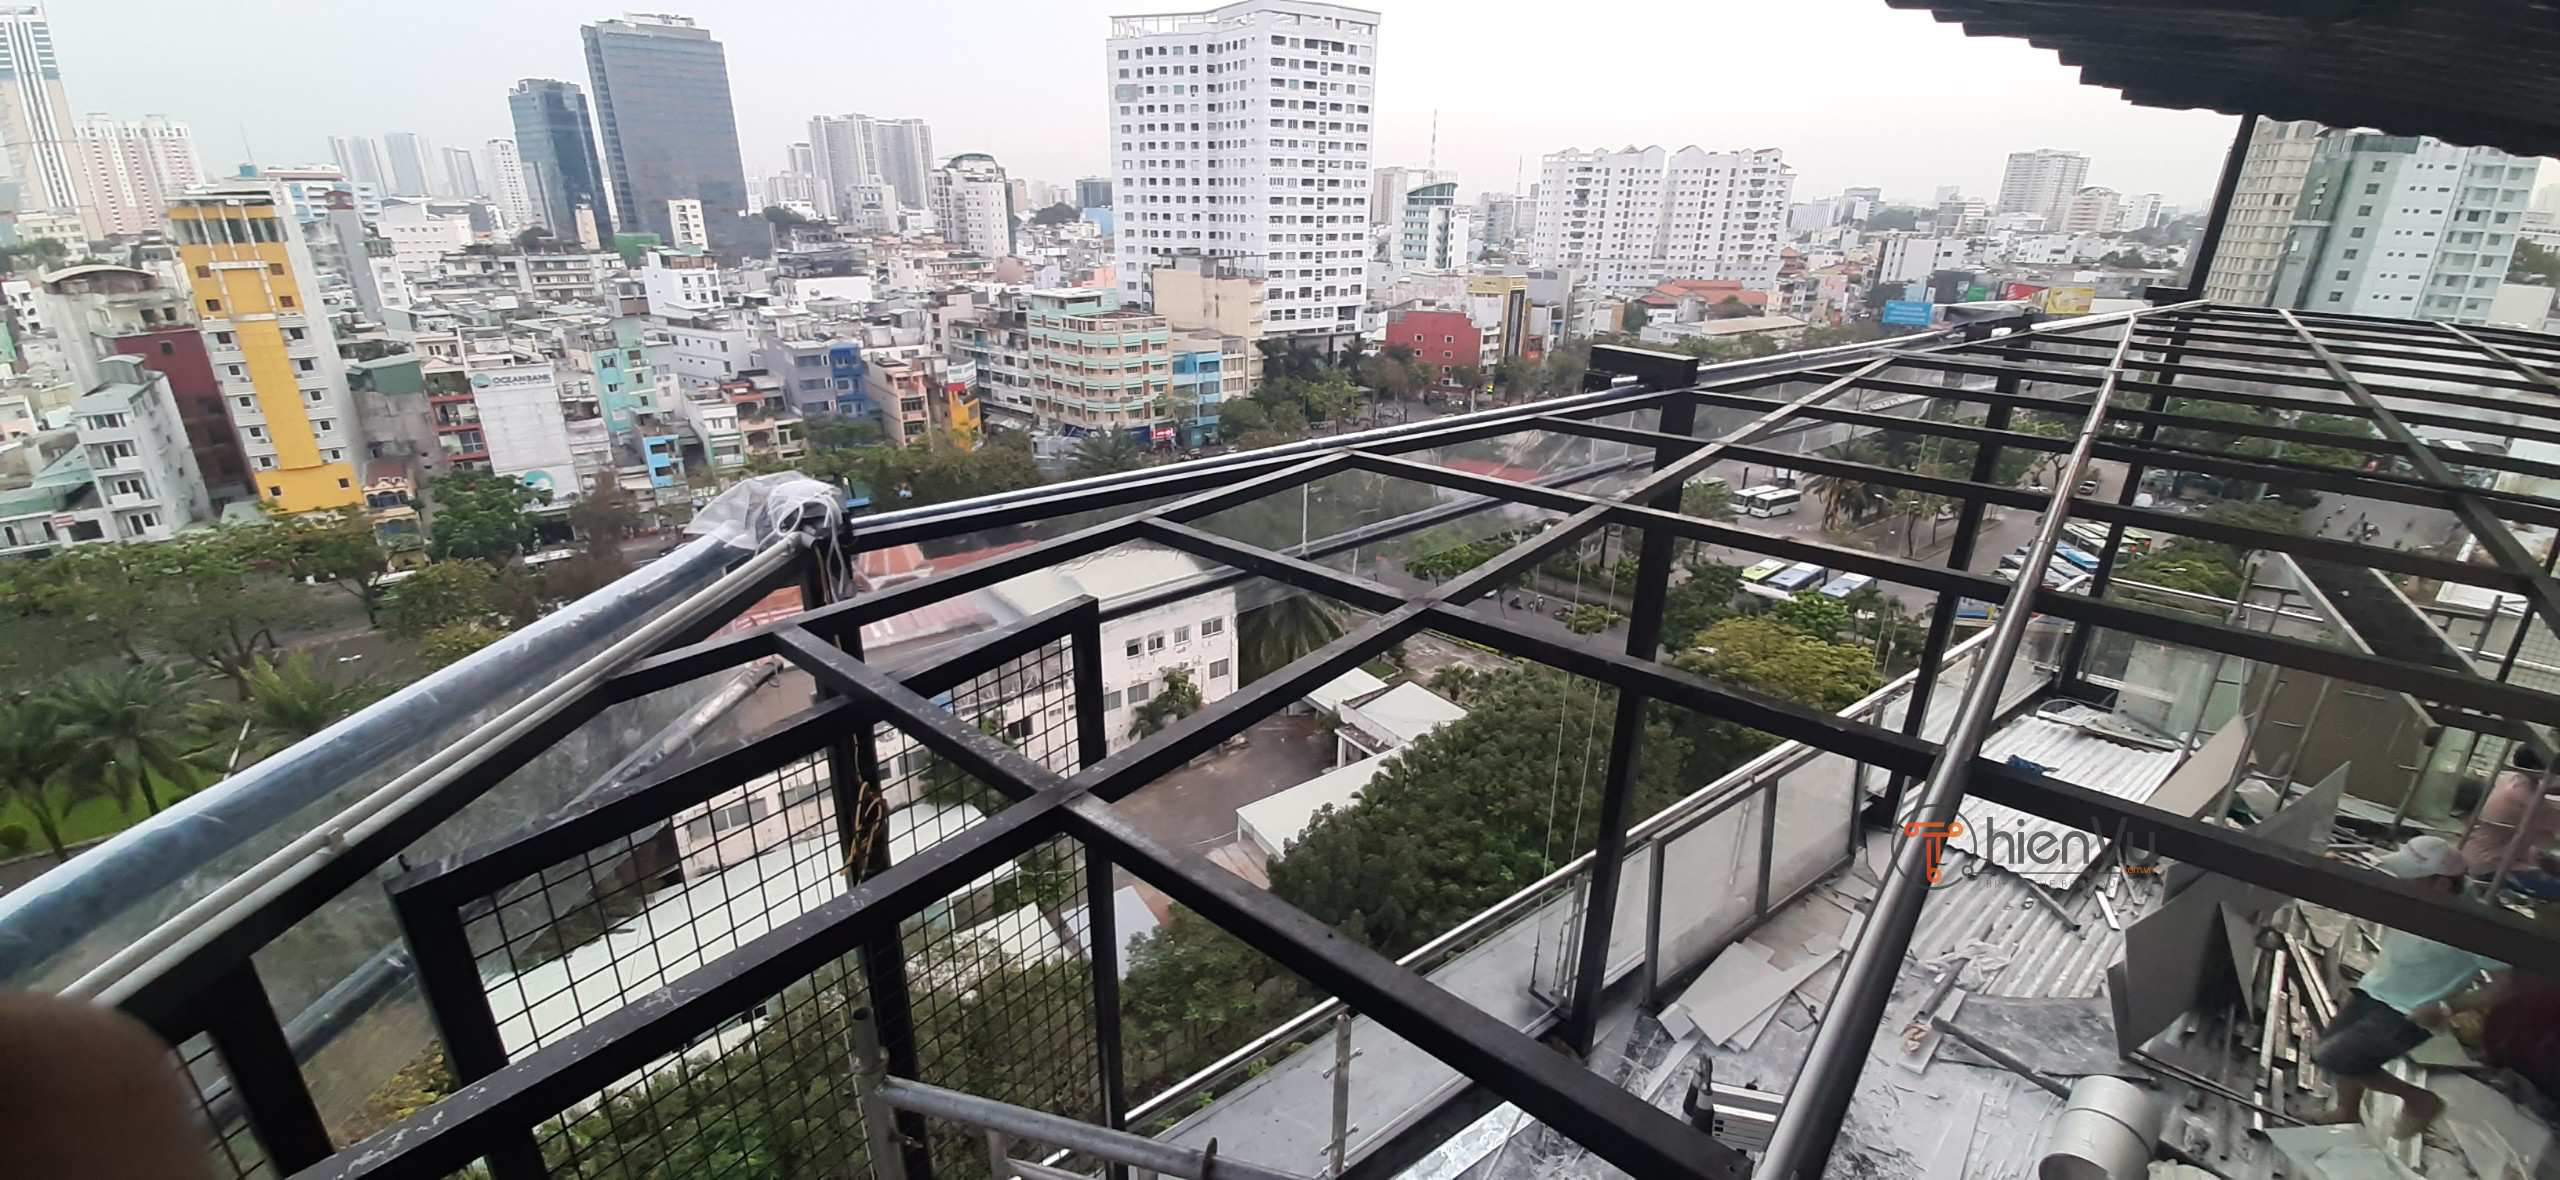 cong trinh lap dat am thanh rooftop